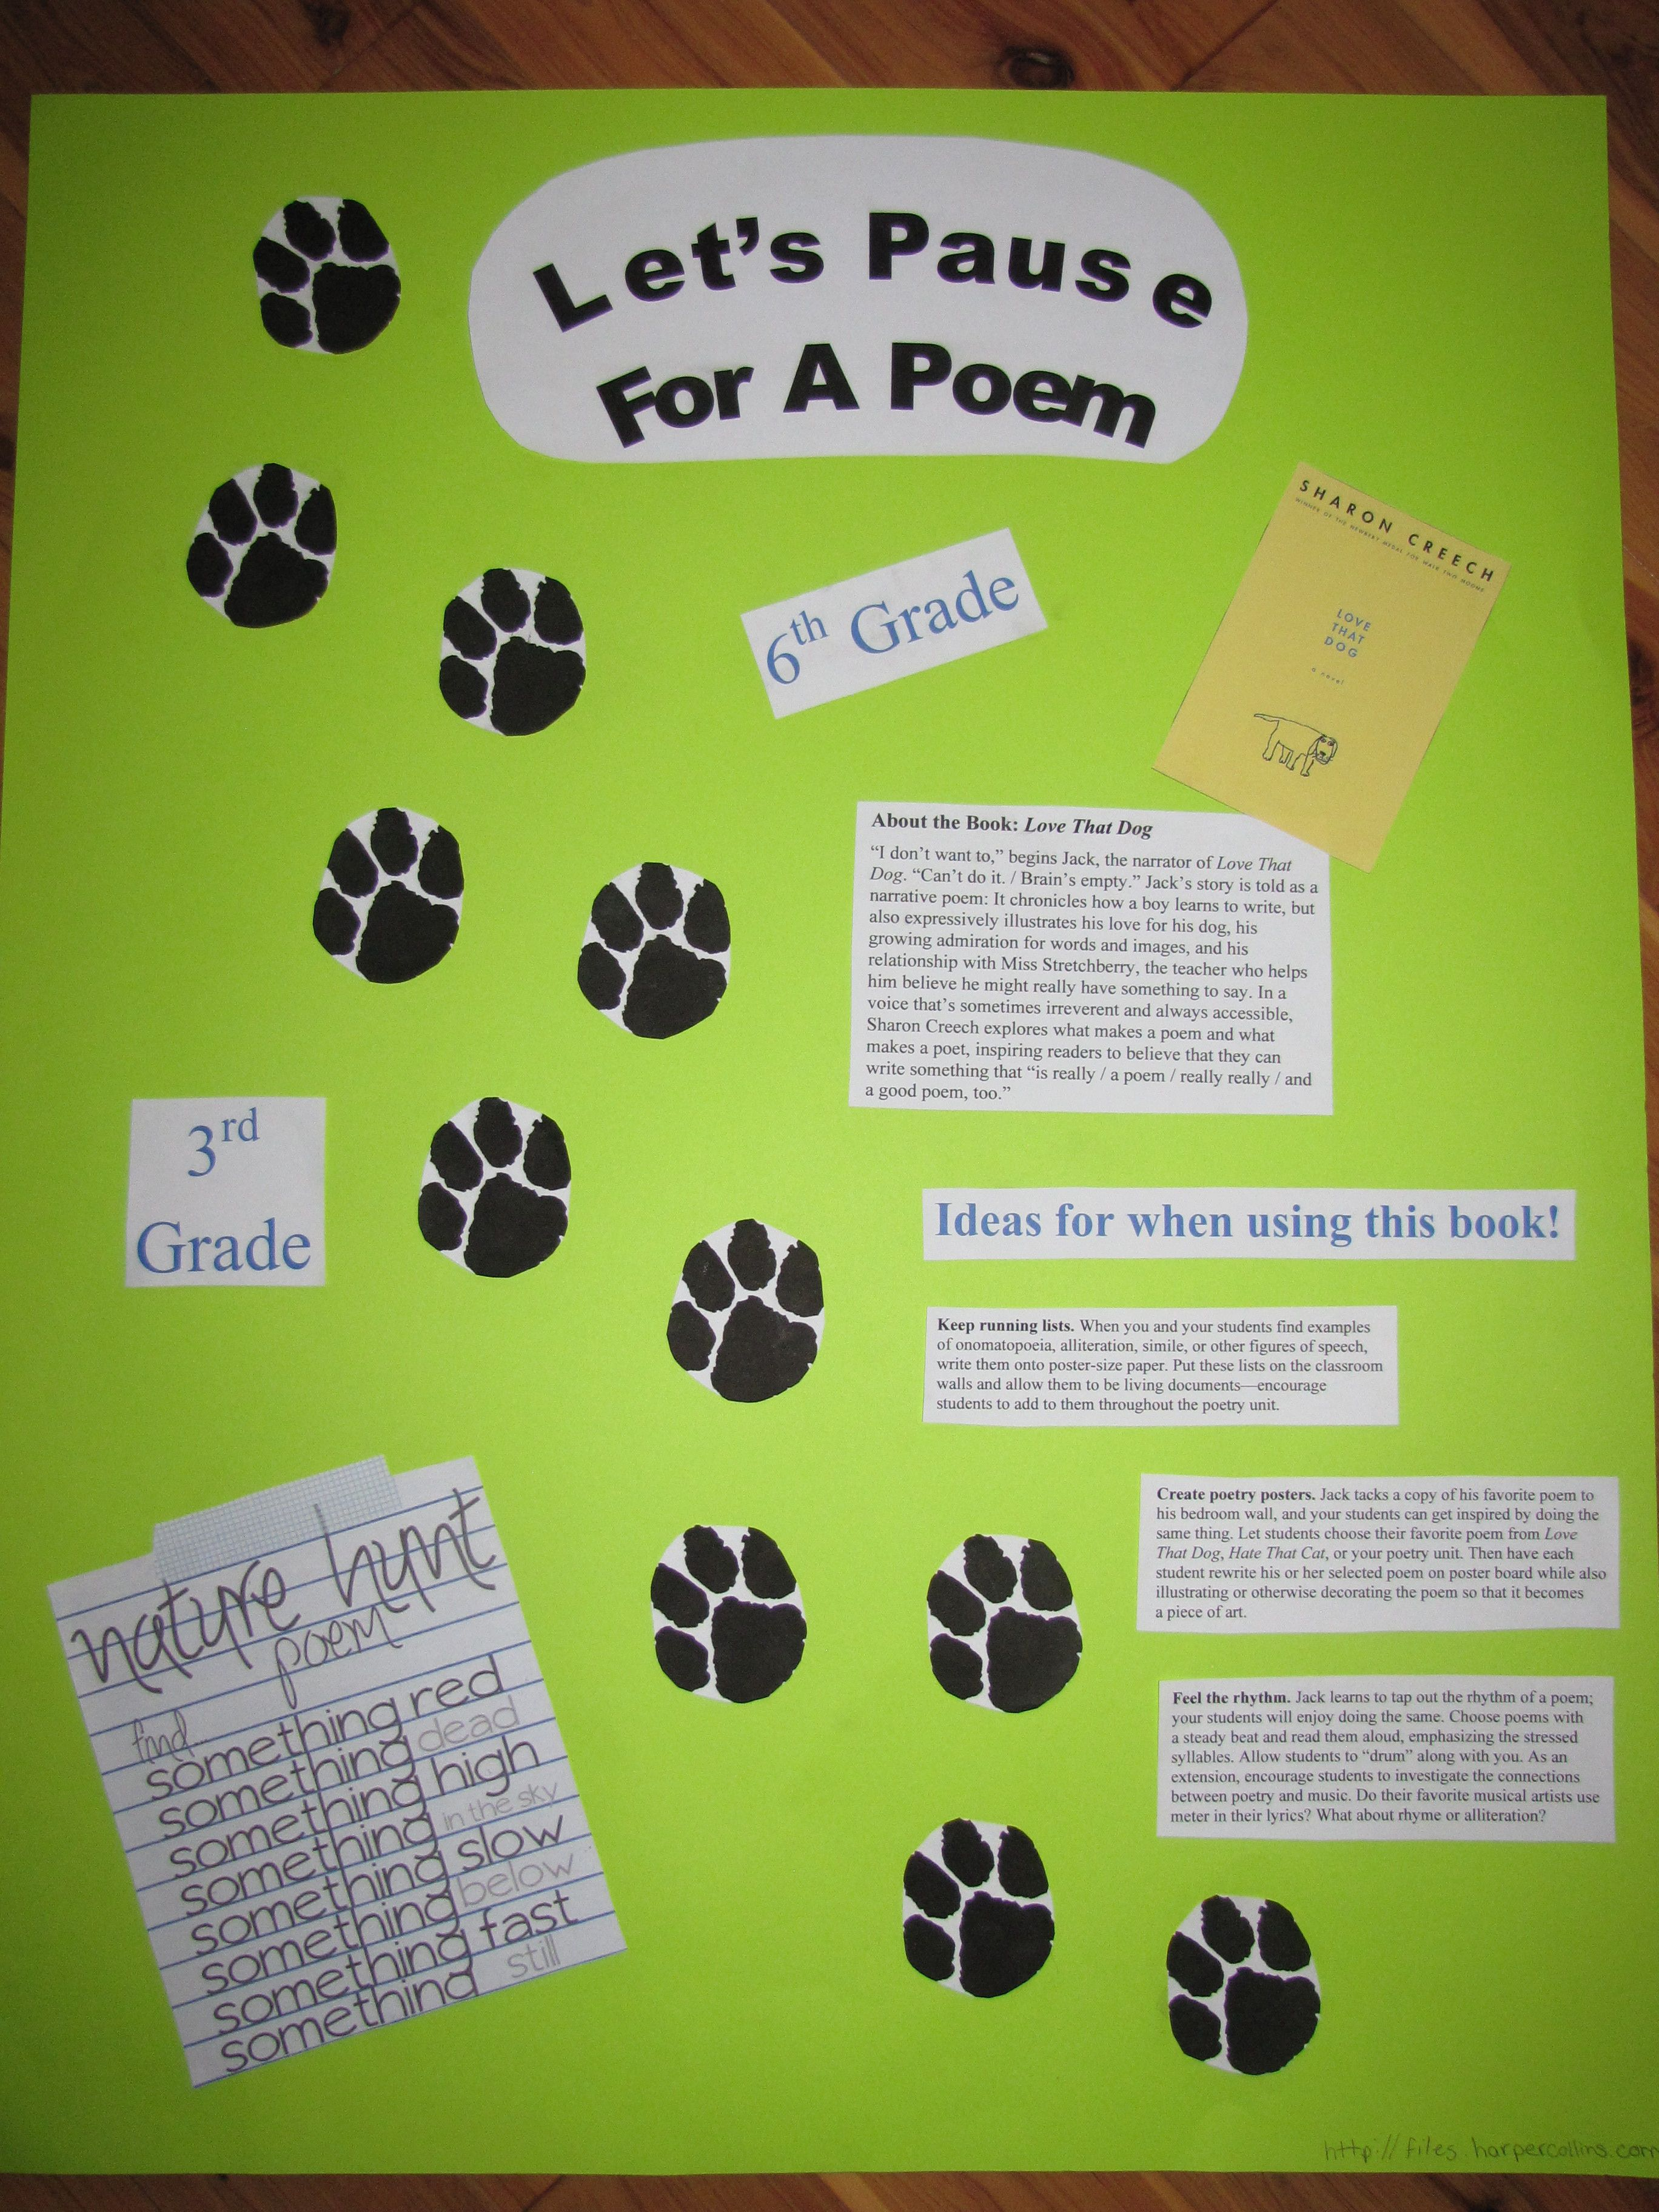 Third Graders Will Love A Poem Nature Hunt Good For Teaching Poetry And Science In A Fun